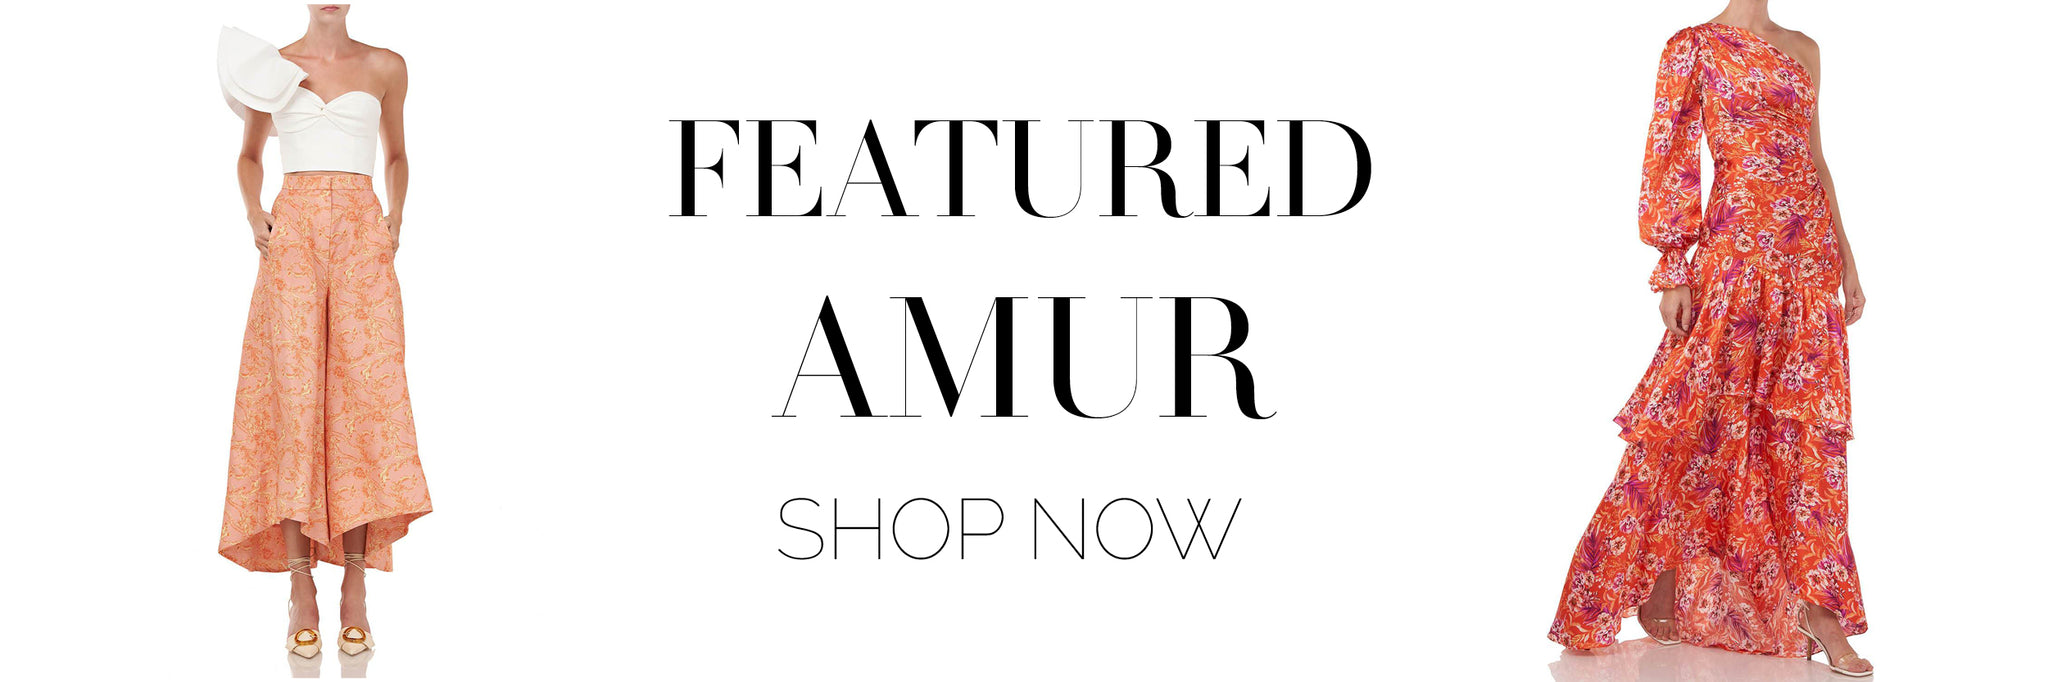 Featured: Amur Shop now.